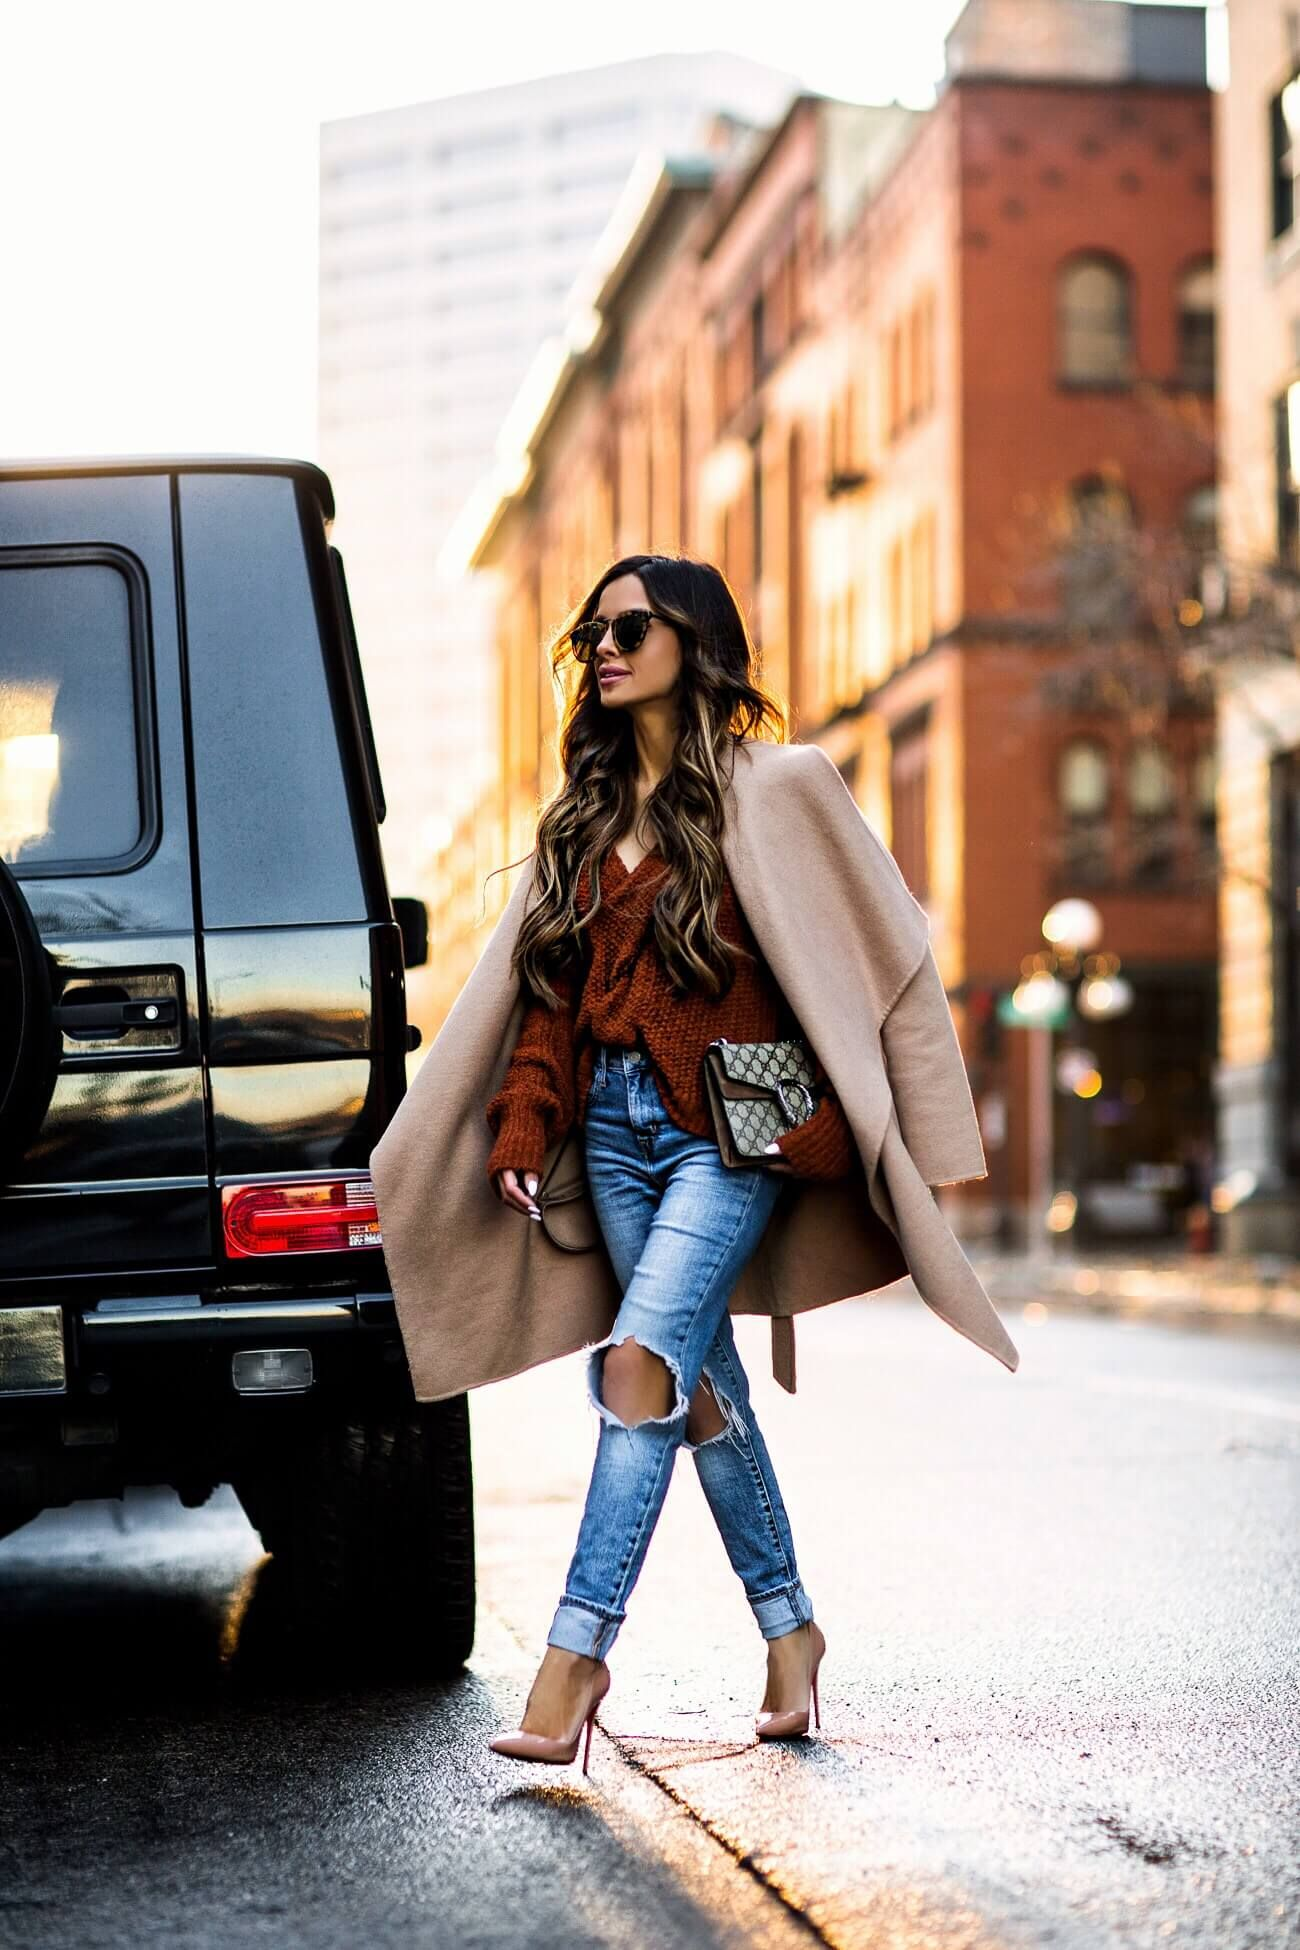 b879a149975 fashion blogger mia mia mine wearing a camel coat and levi s jeans from  shopbop